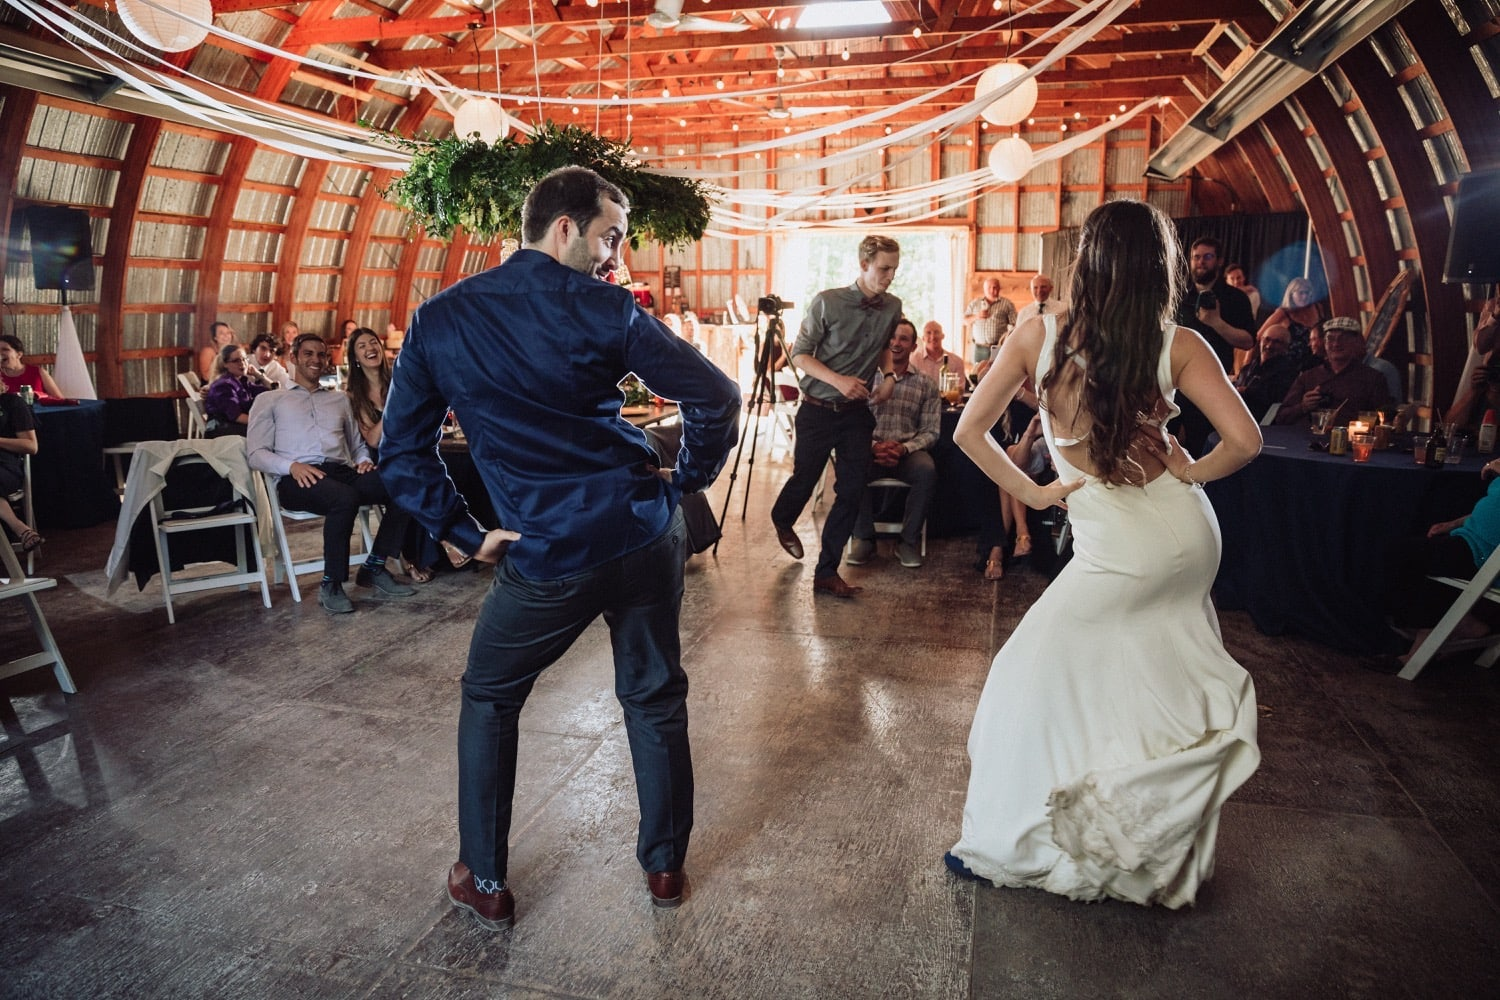 Wedding couple entertains their guests with a fun choreographed first dance at their wedding